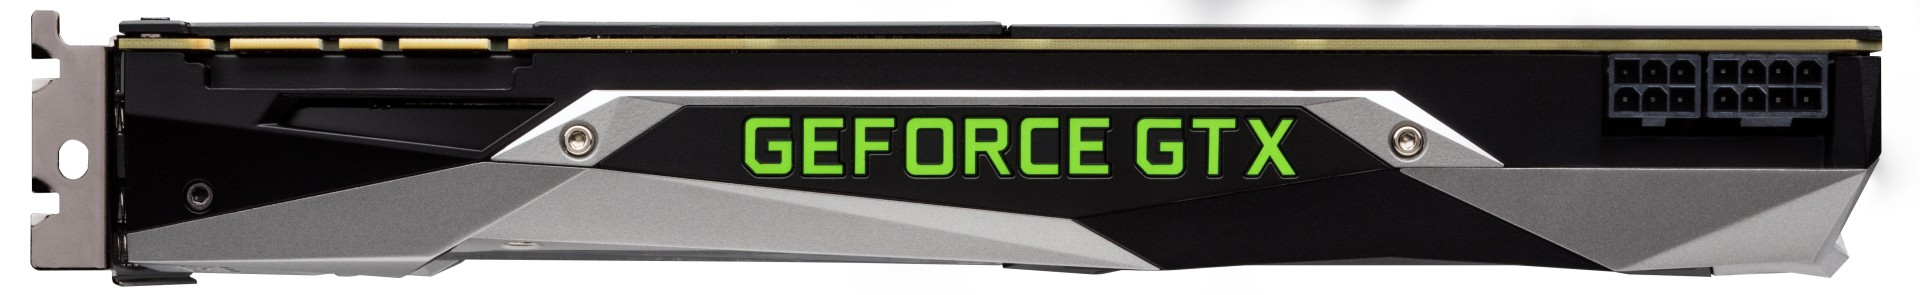 GeForce GTX 1080ti Top 1488314075